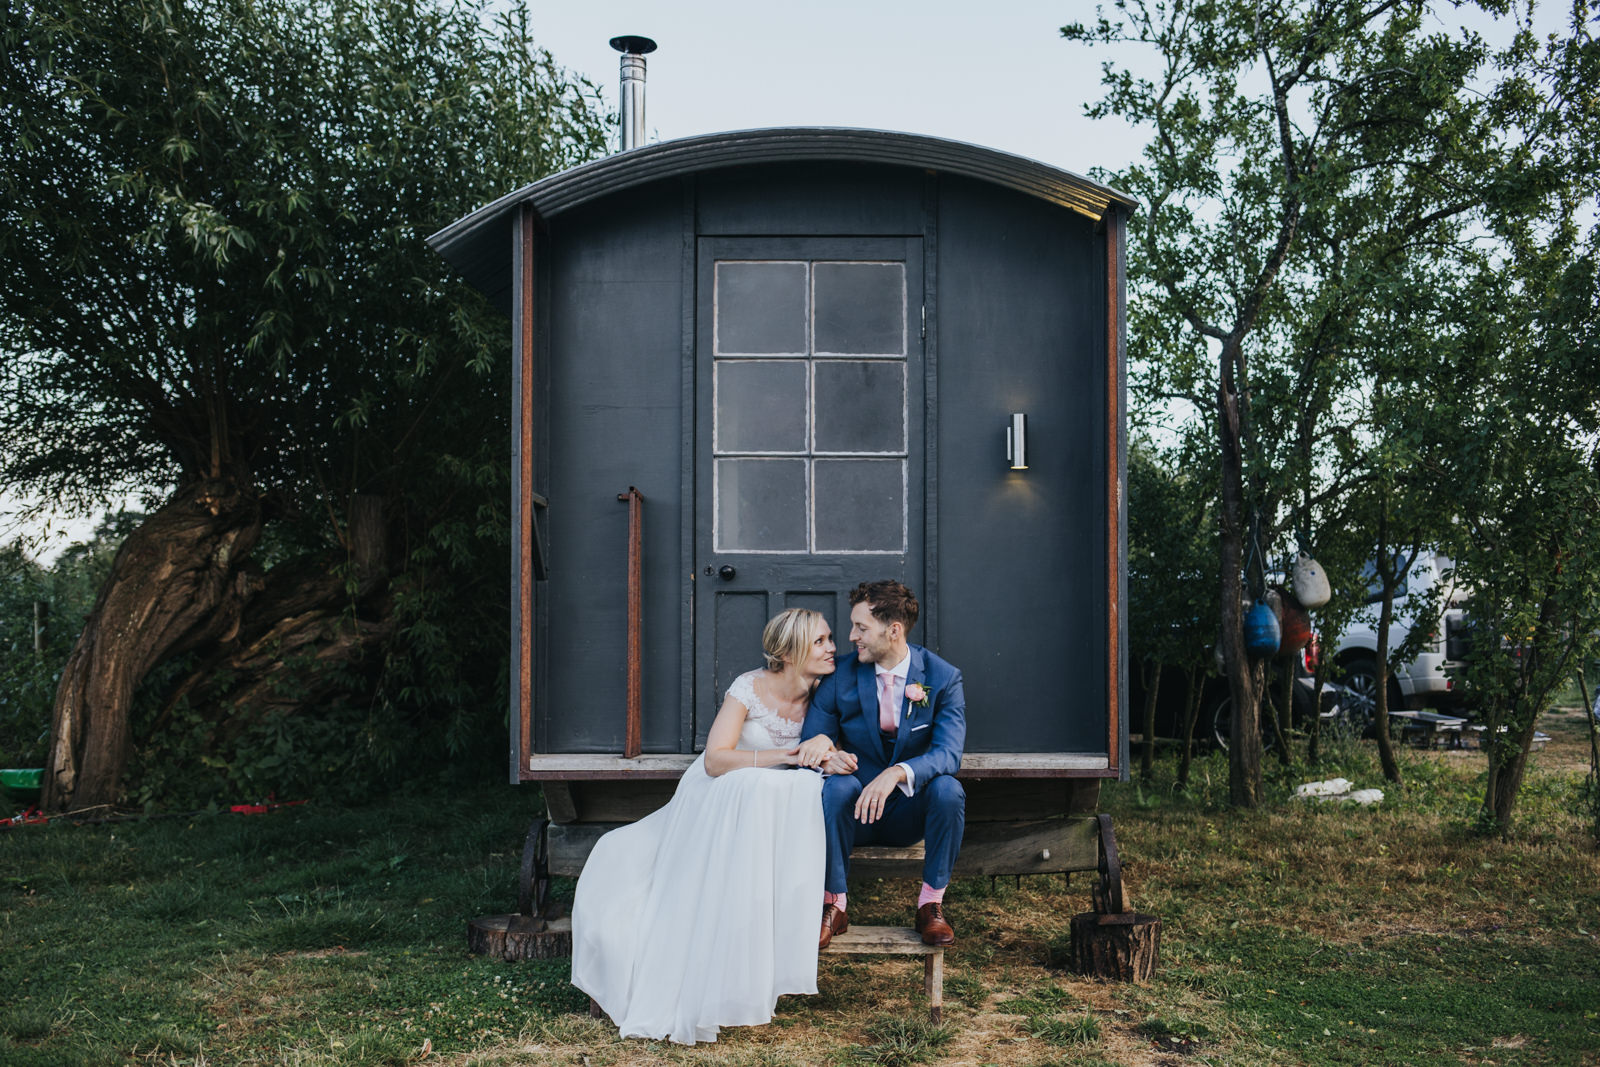 Bride and groom in front of the caravan at Maybush Weddings in Witney  - Oxfordshire tipi wedding